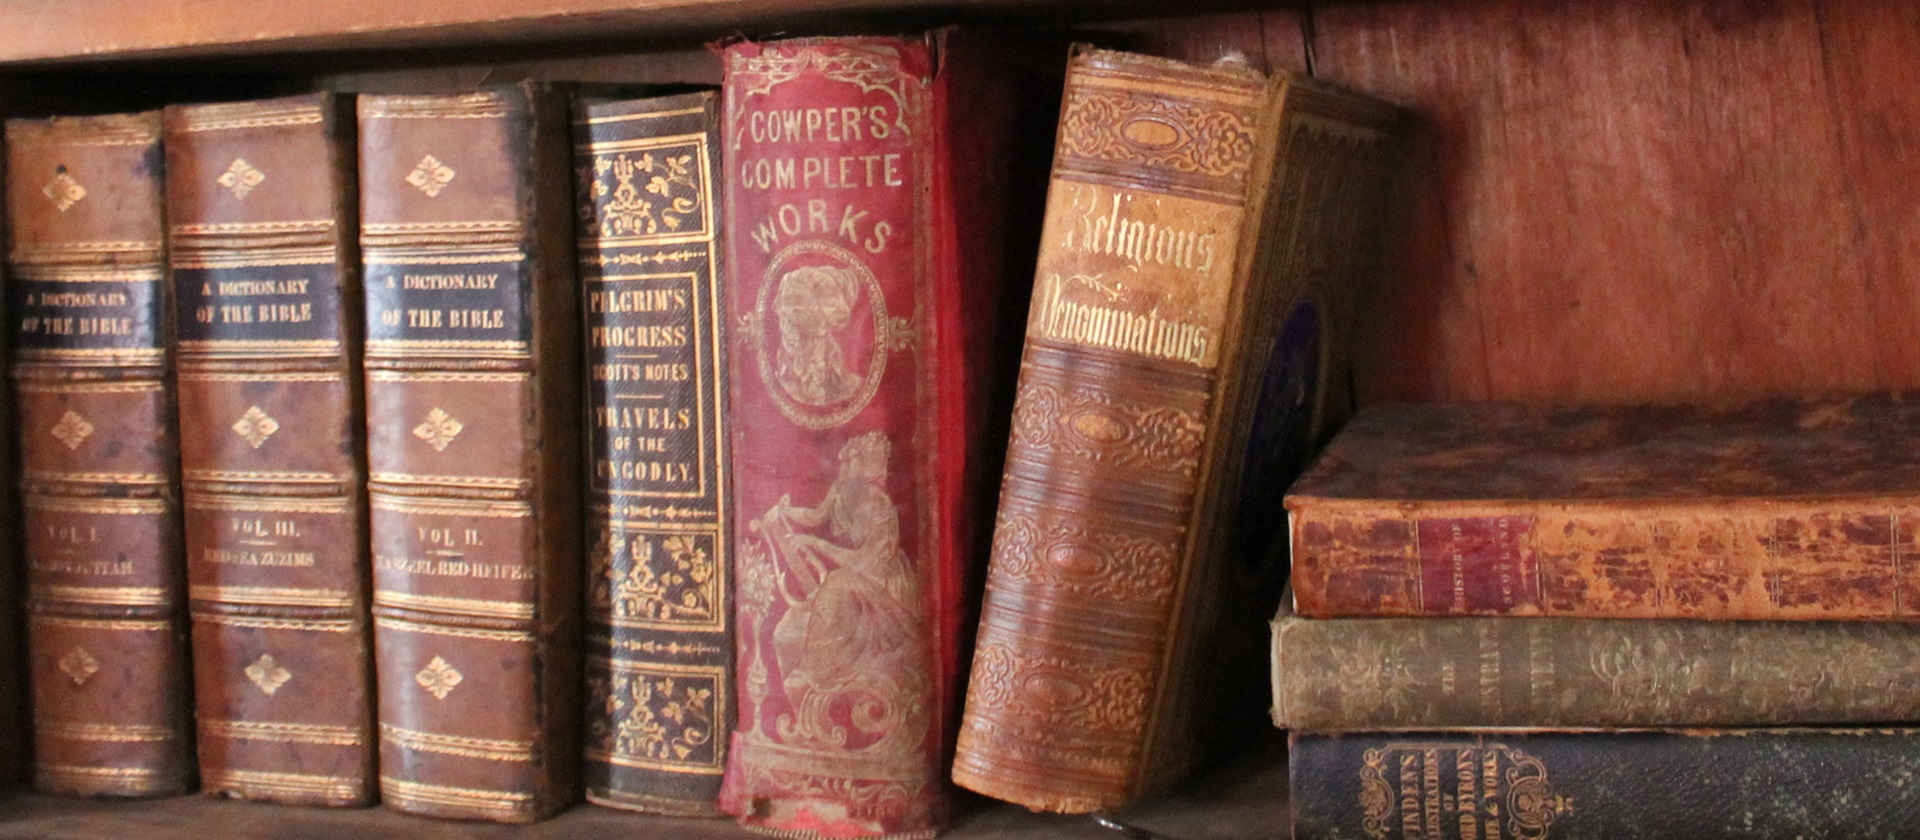 old books on a shelf at Black Creek Pioneer Village